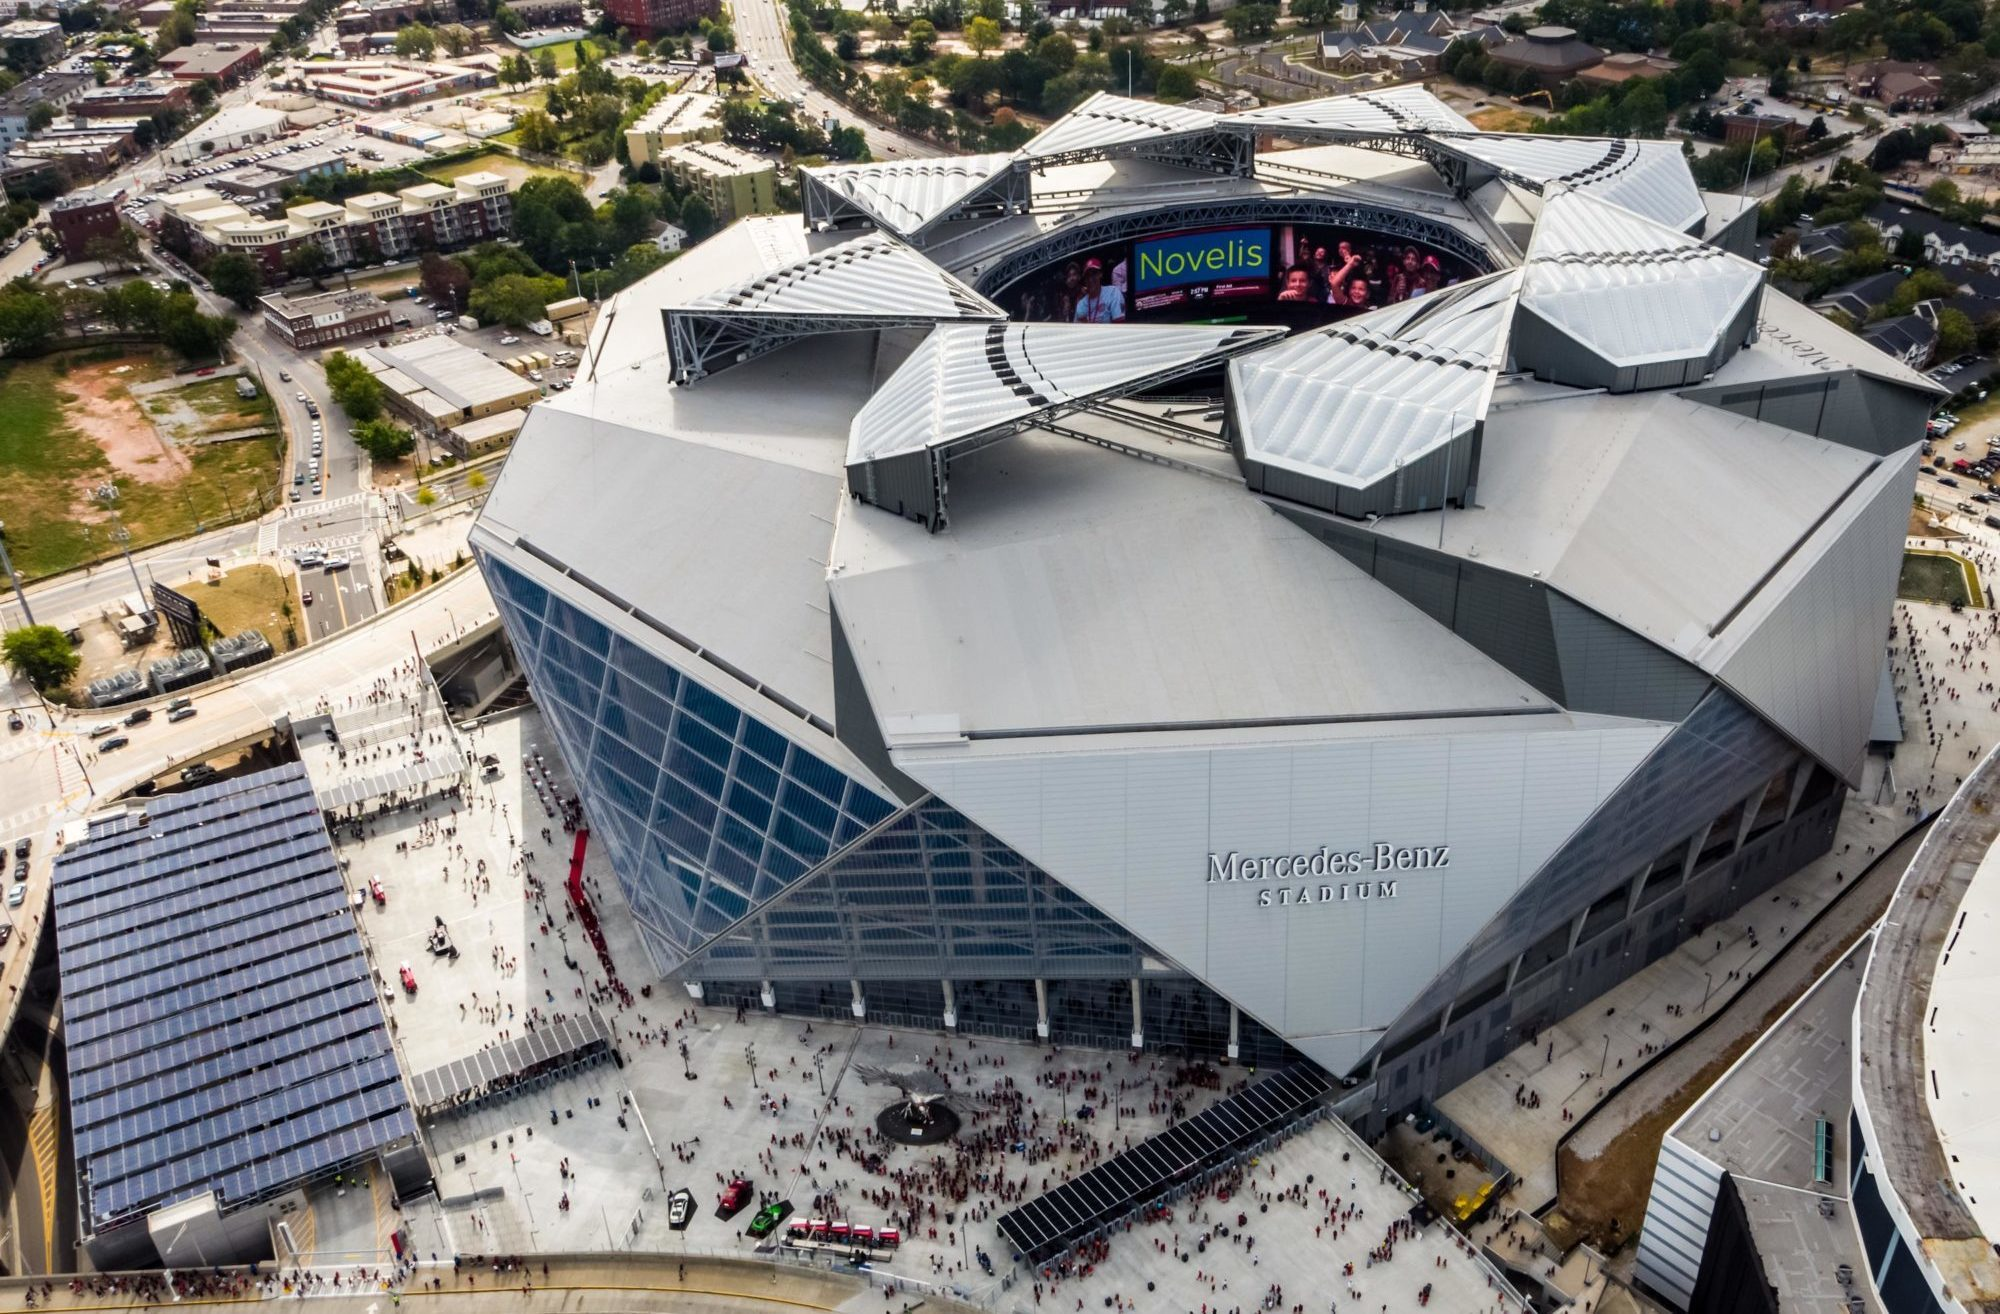 Charitybuzz: 4 Tickets to Super Bowl LIII &